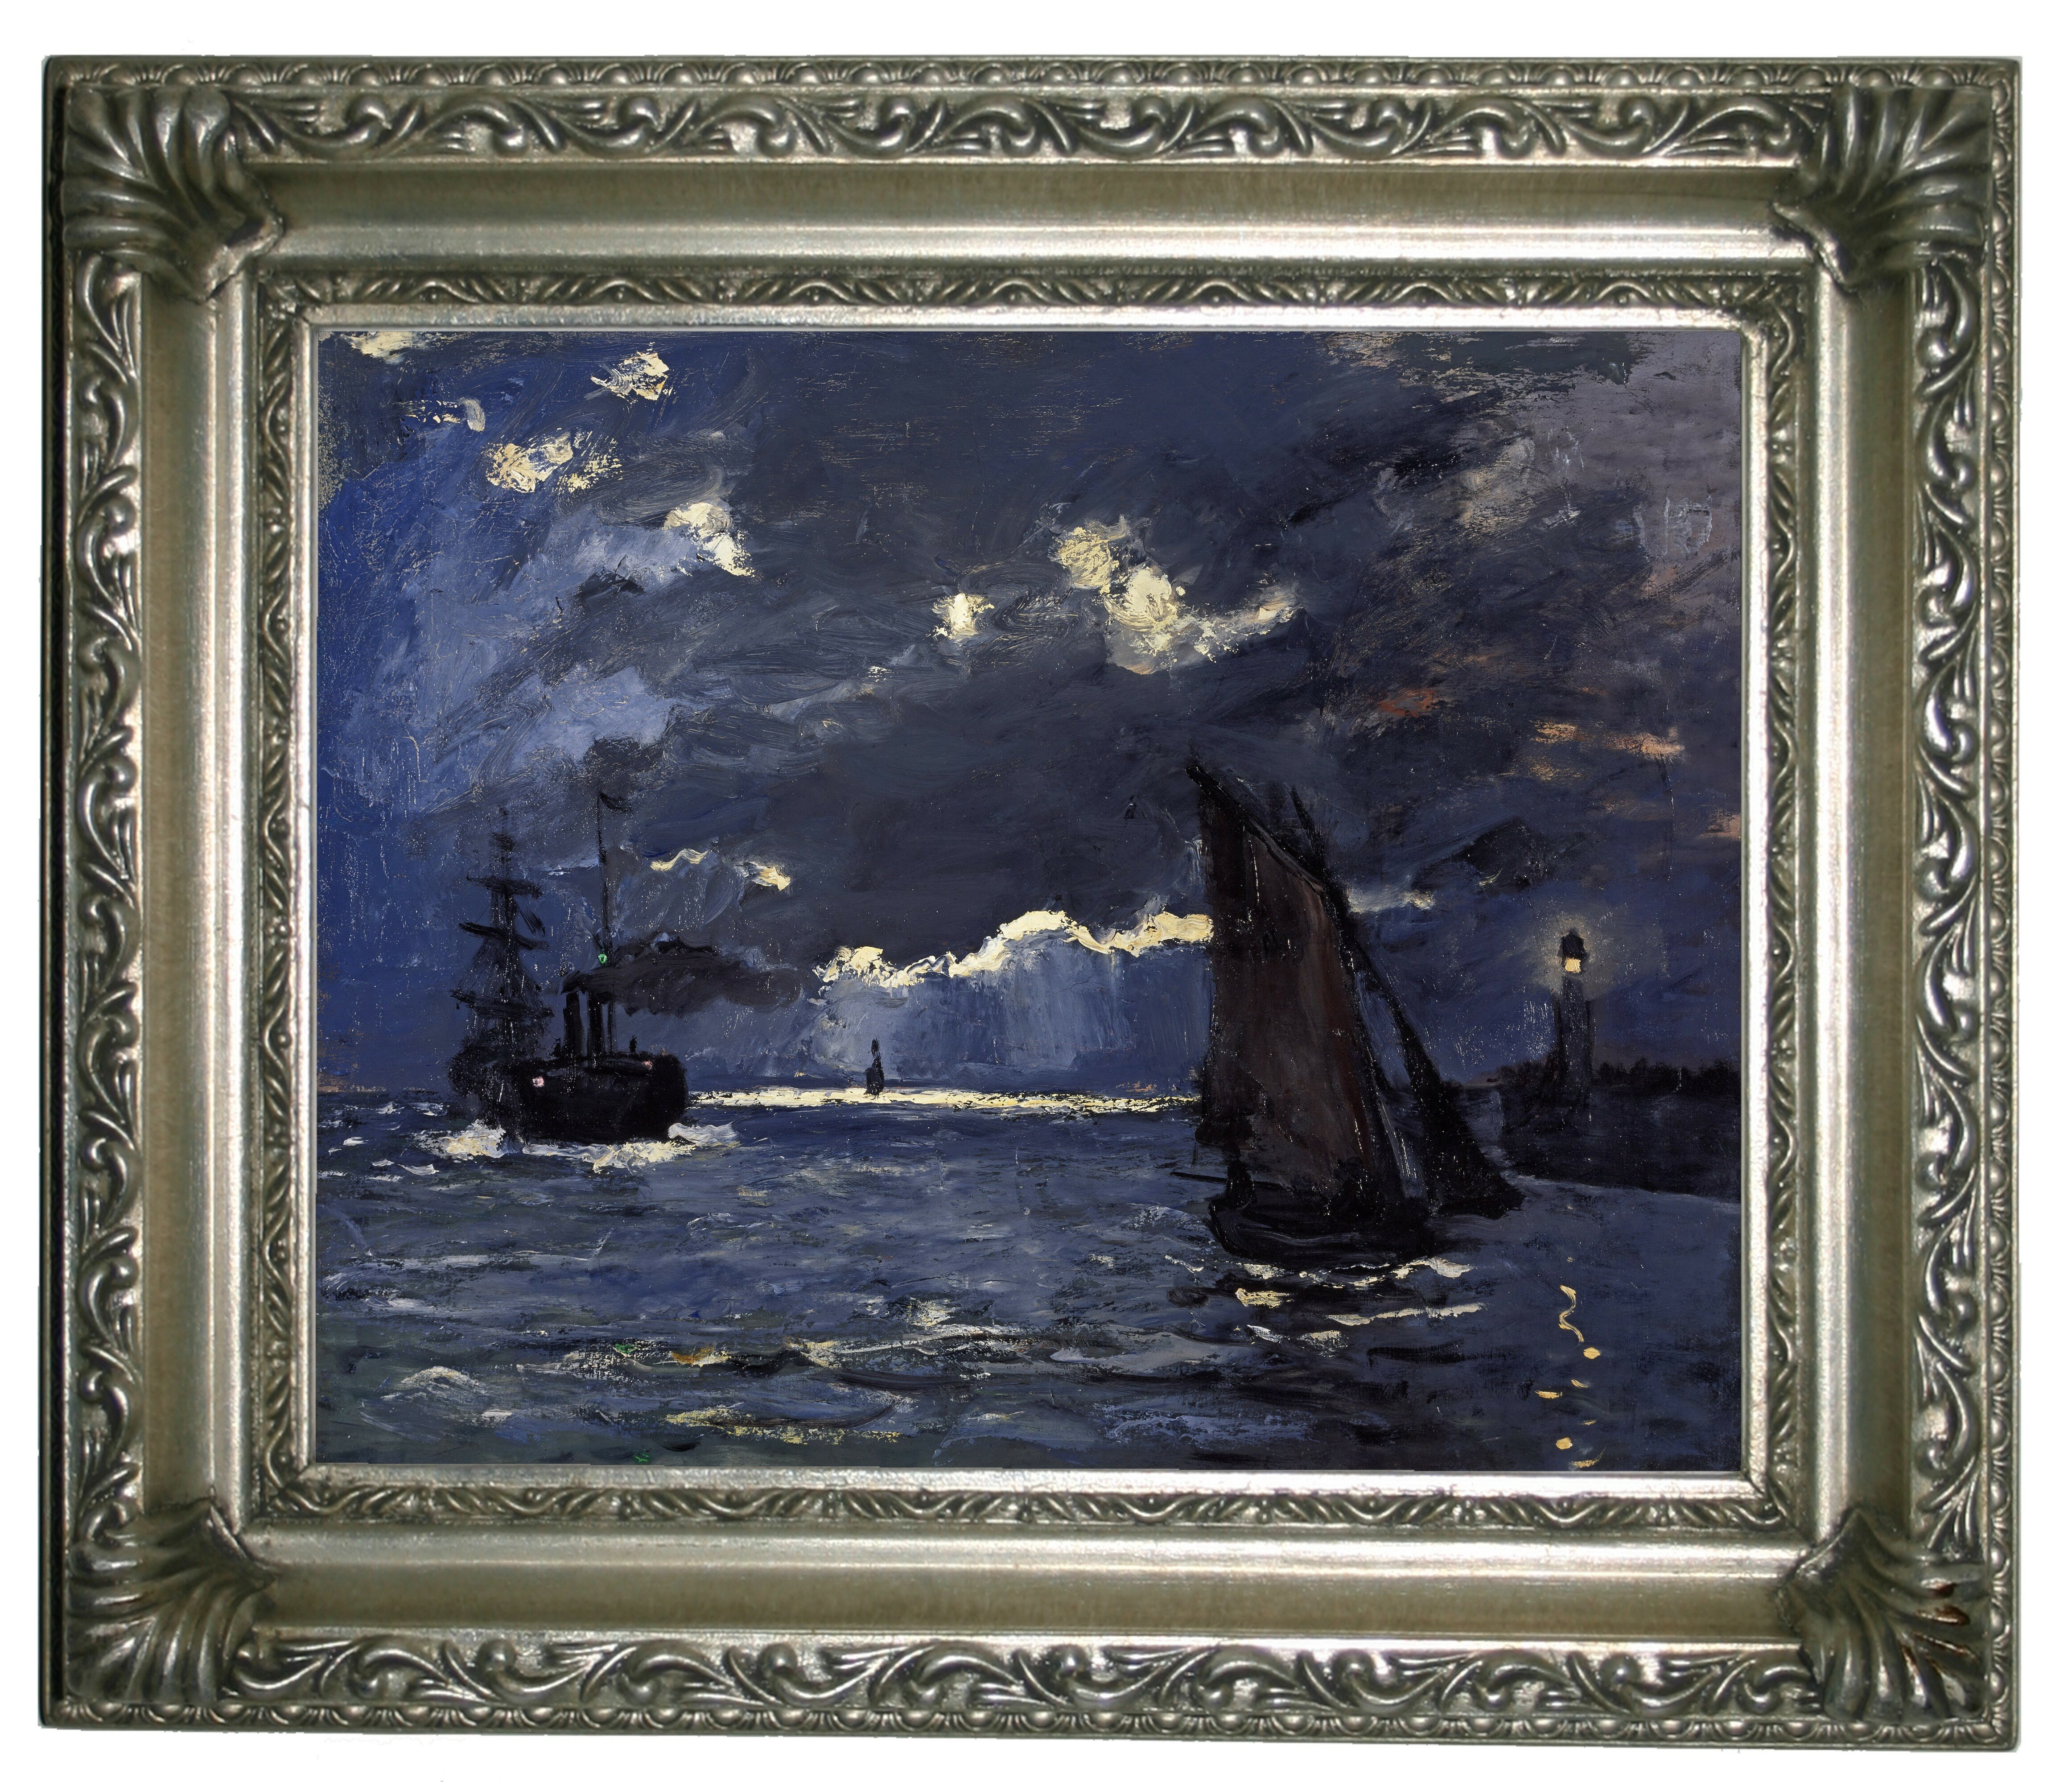 Seascape by Claude Monet Giclee Fine ArtPrint Reproduction on Canvas